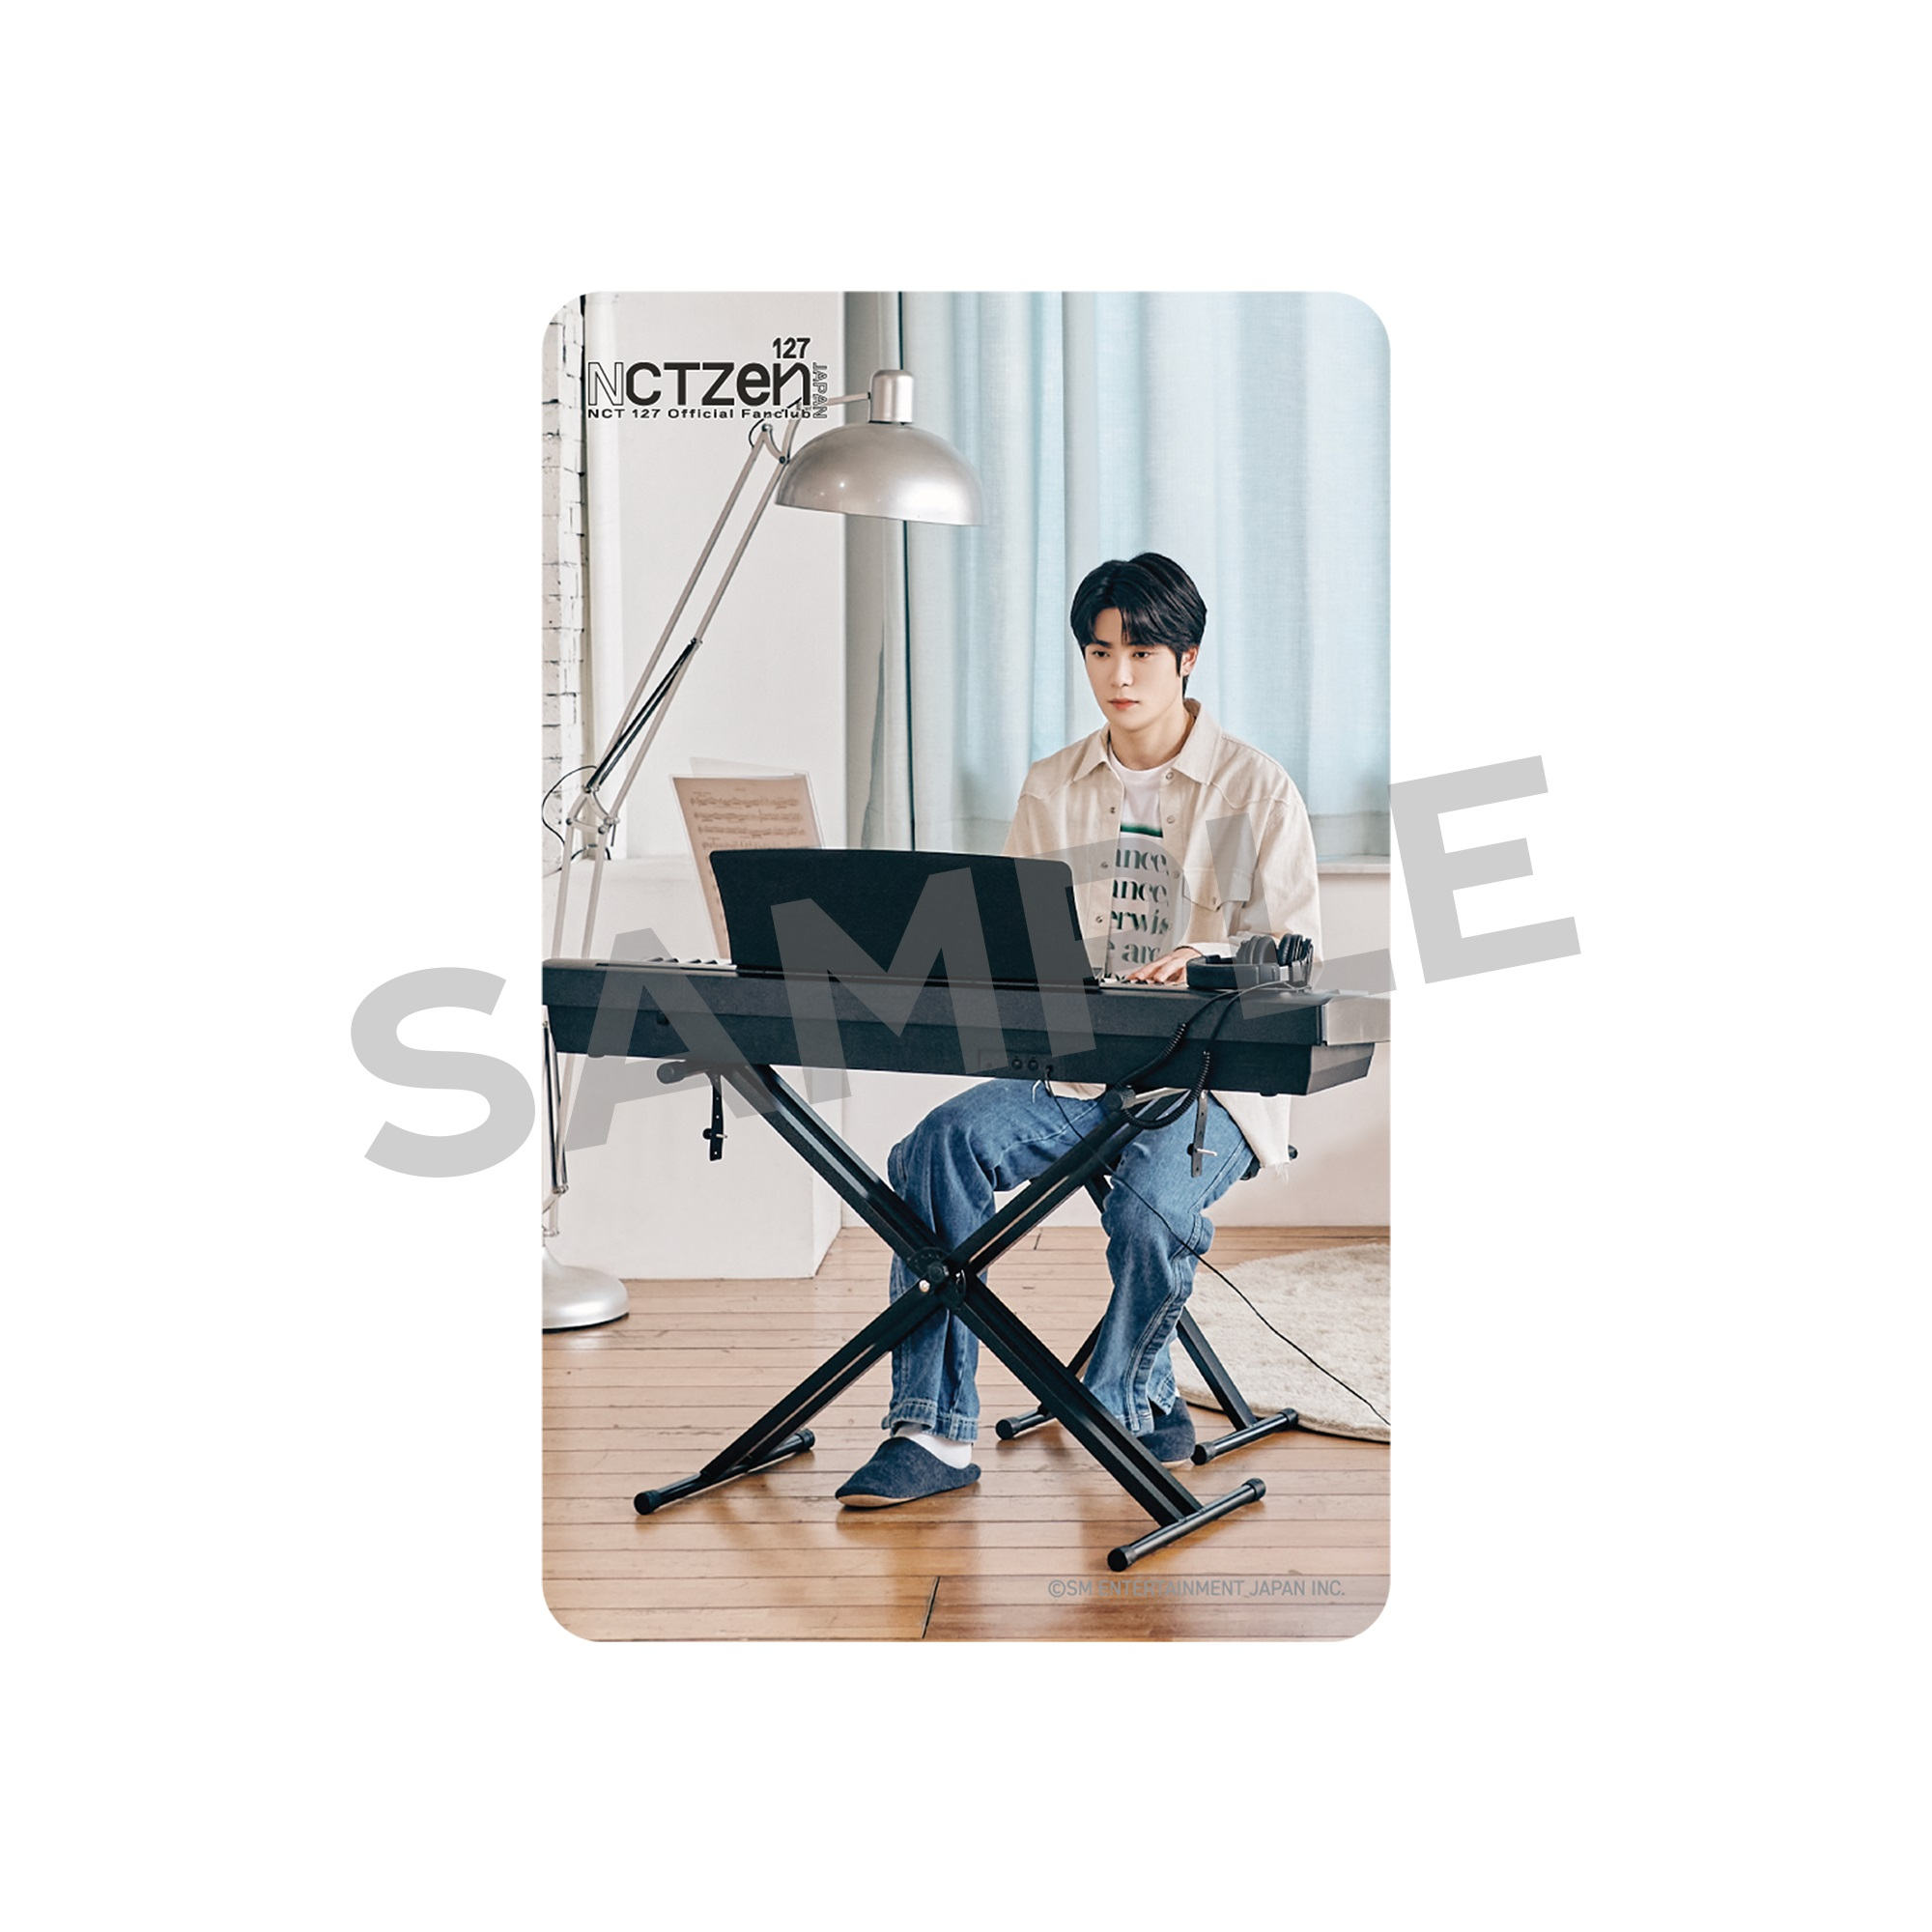 【NCT 127】『NCT 127 OFFICIAL BOOK Vol.4』グッズを、メンバー別に詳しく紹介!_7_4